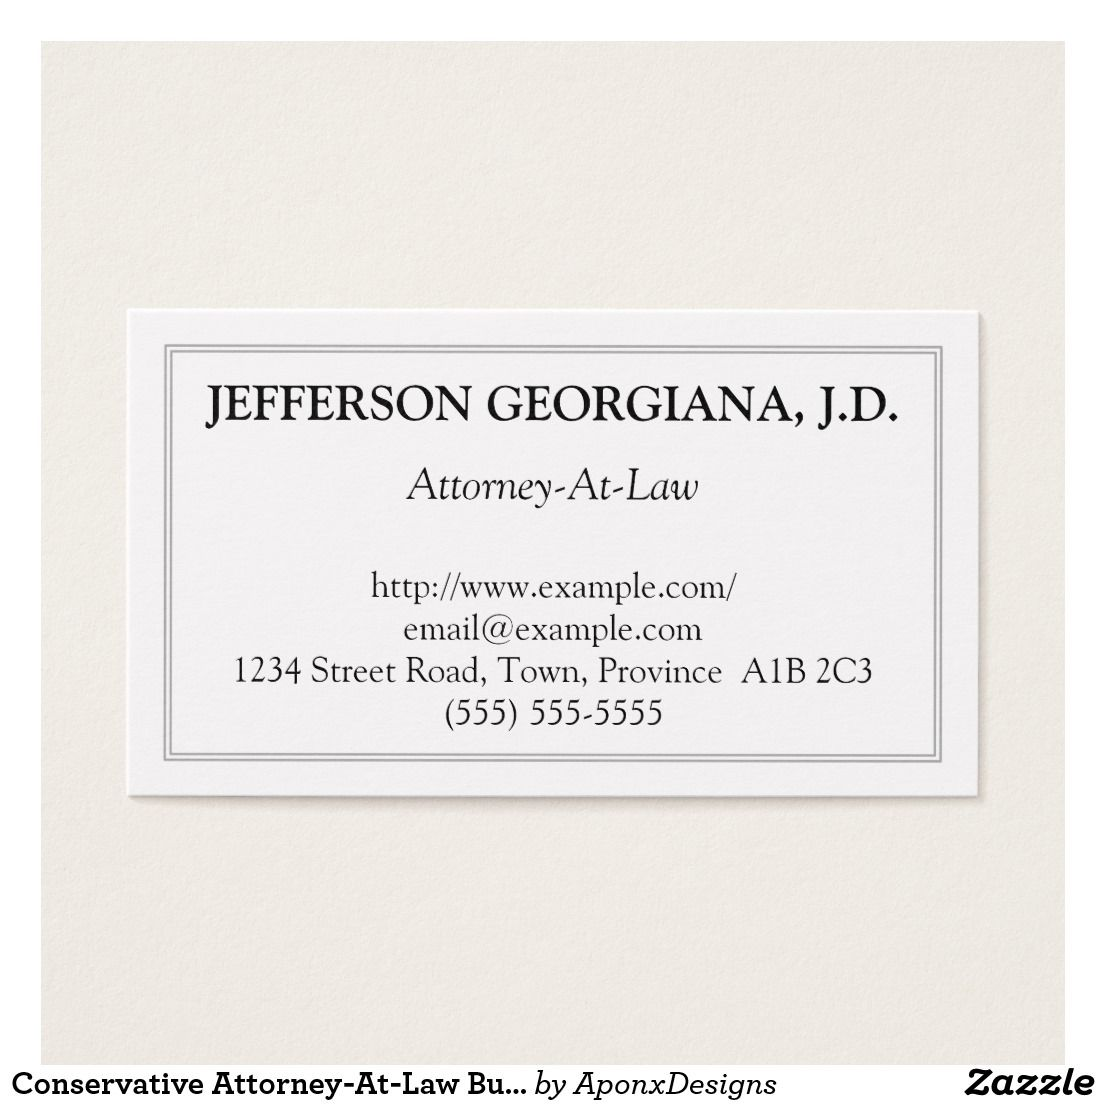 Conservative Attorney-At-Law Business Card | Customizable Business ...